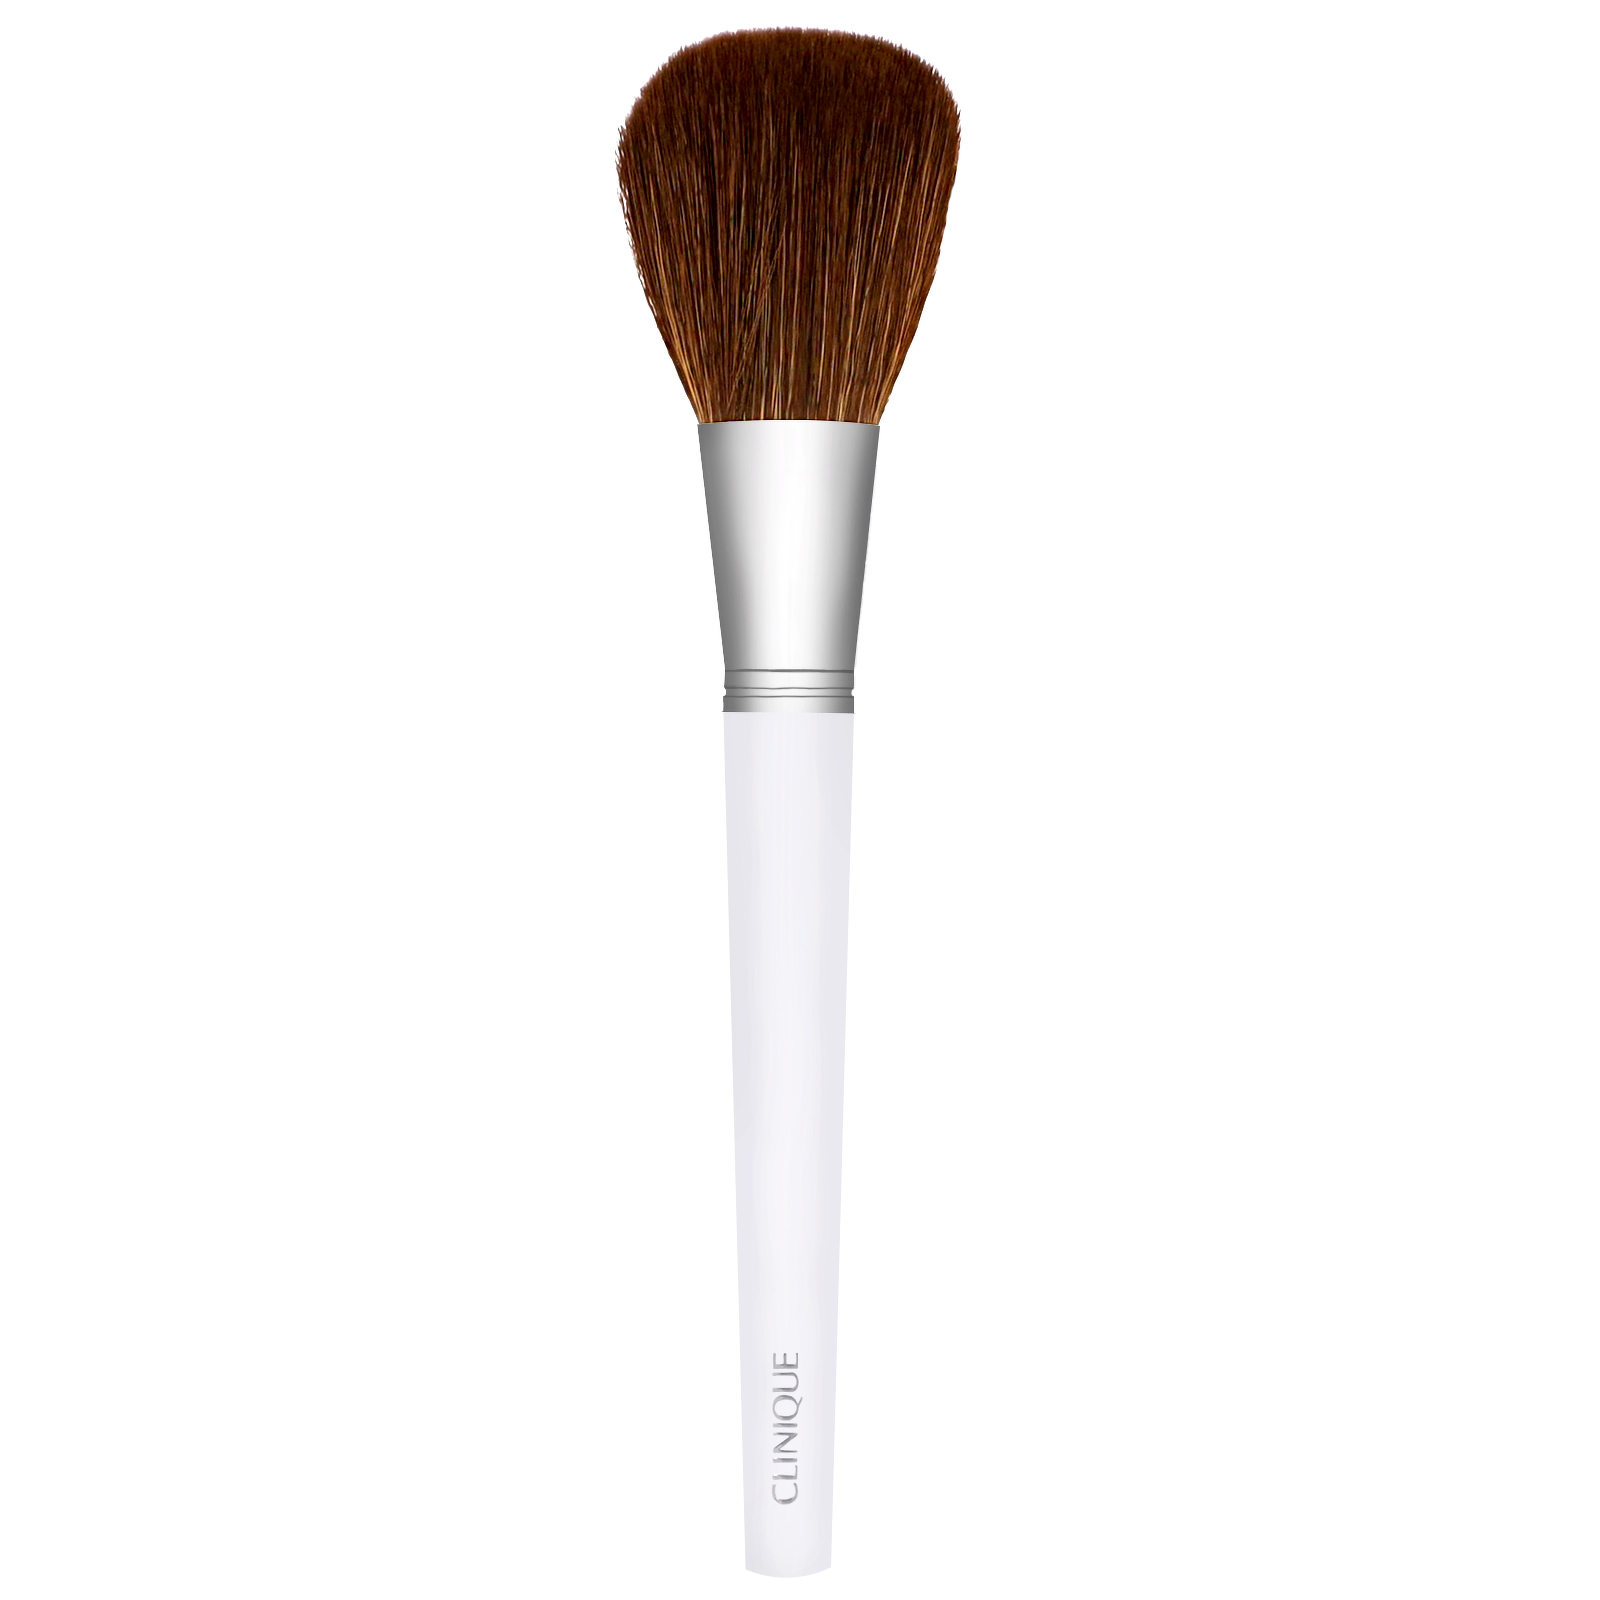 Clinique The Brush Collection Powder Brush